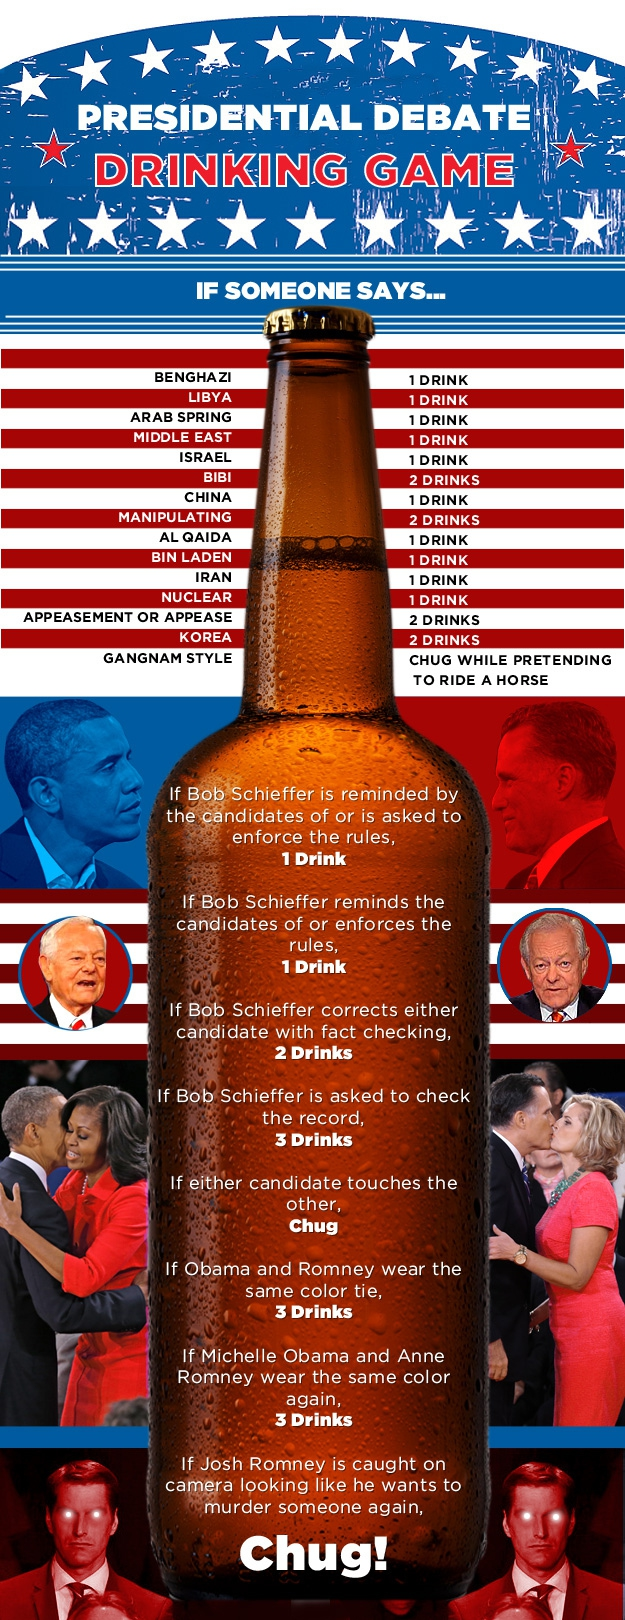 The Presidential Debate Drinking Game: Foreign Policy Edition